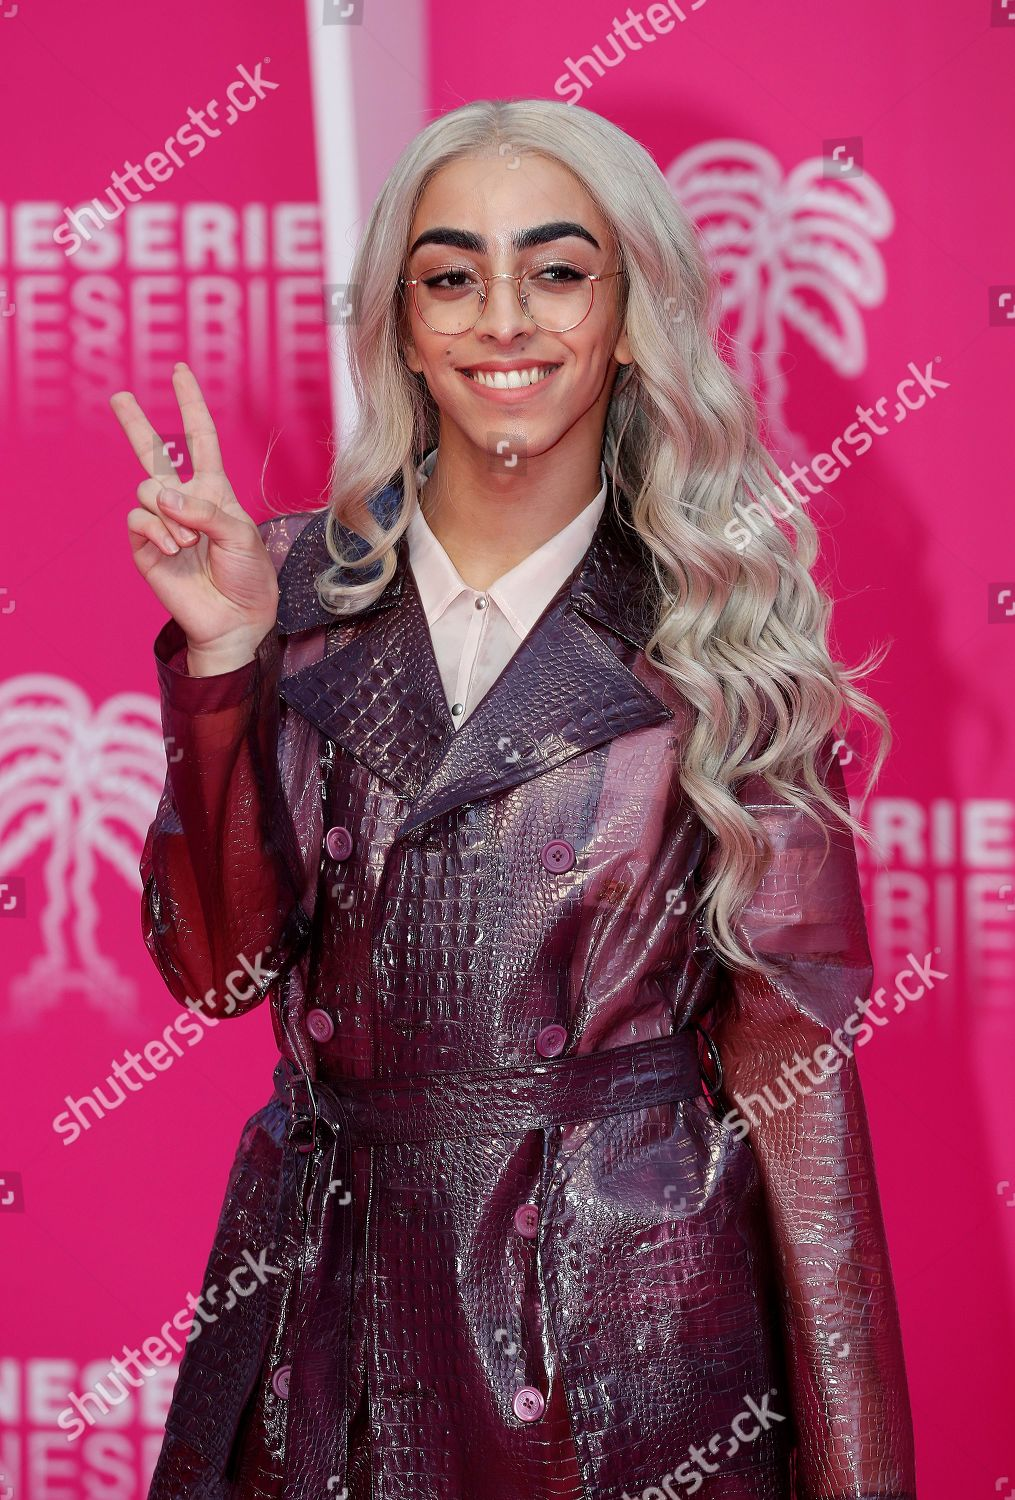 French singer Bilal Hassani poses on pink Editorial Stock Photo